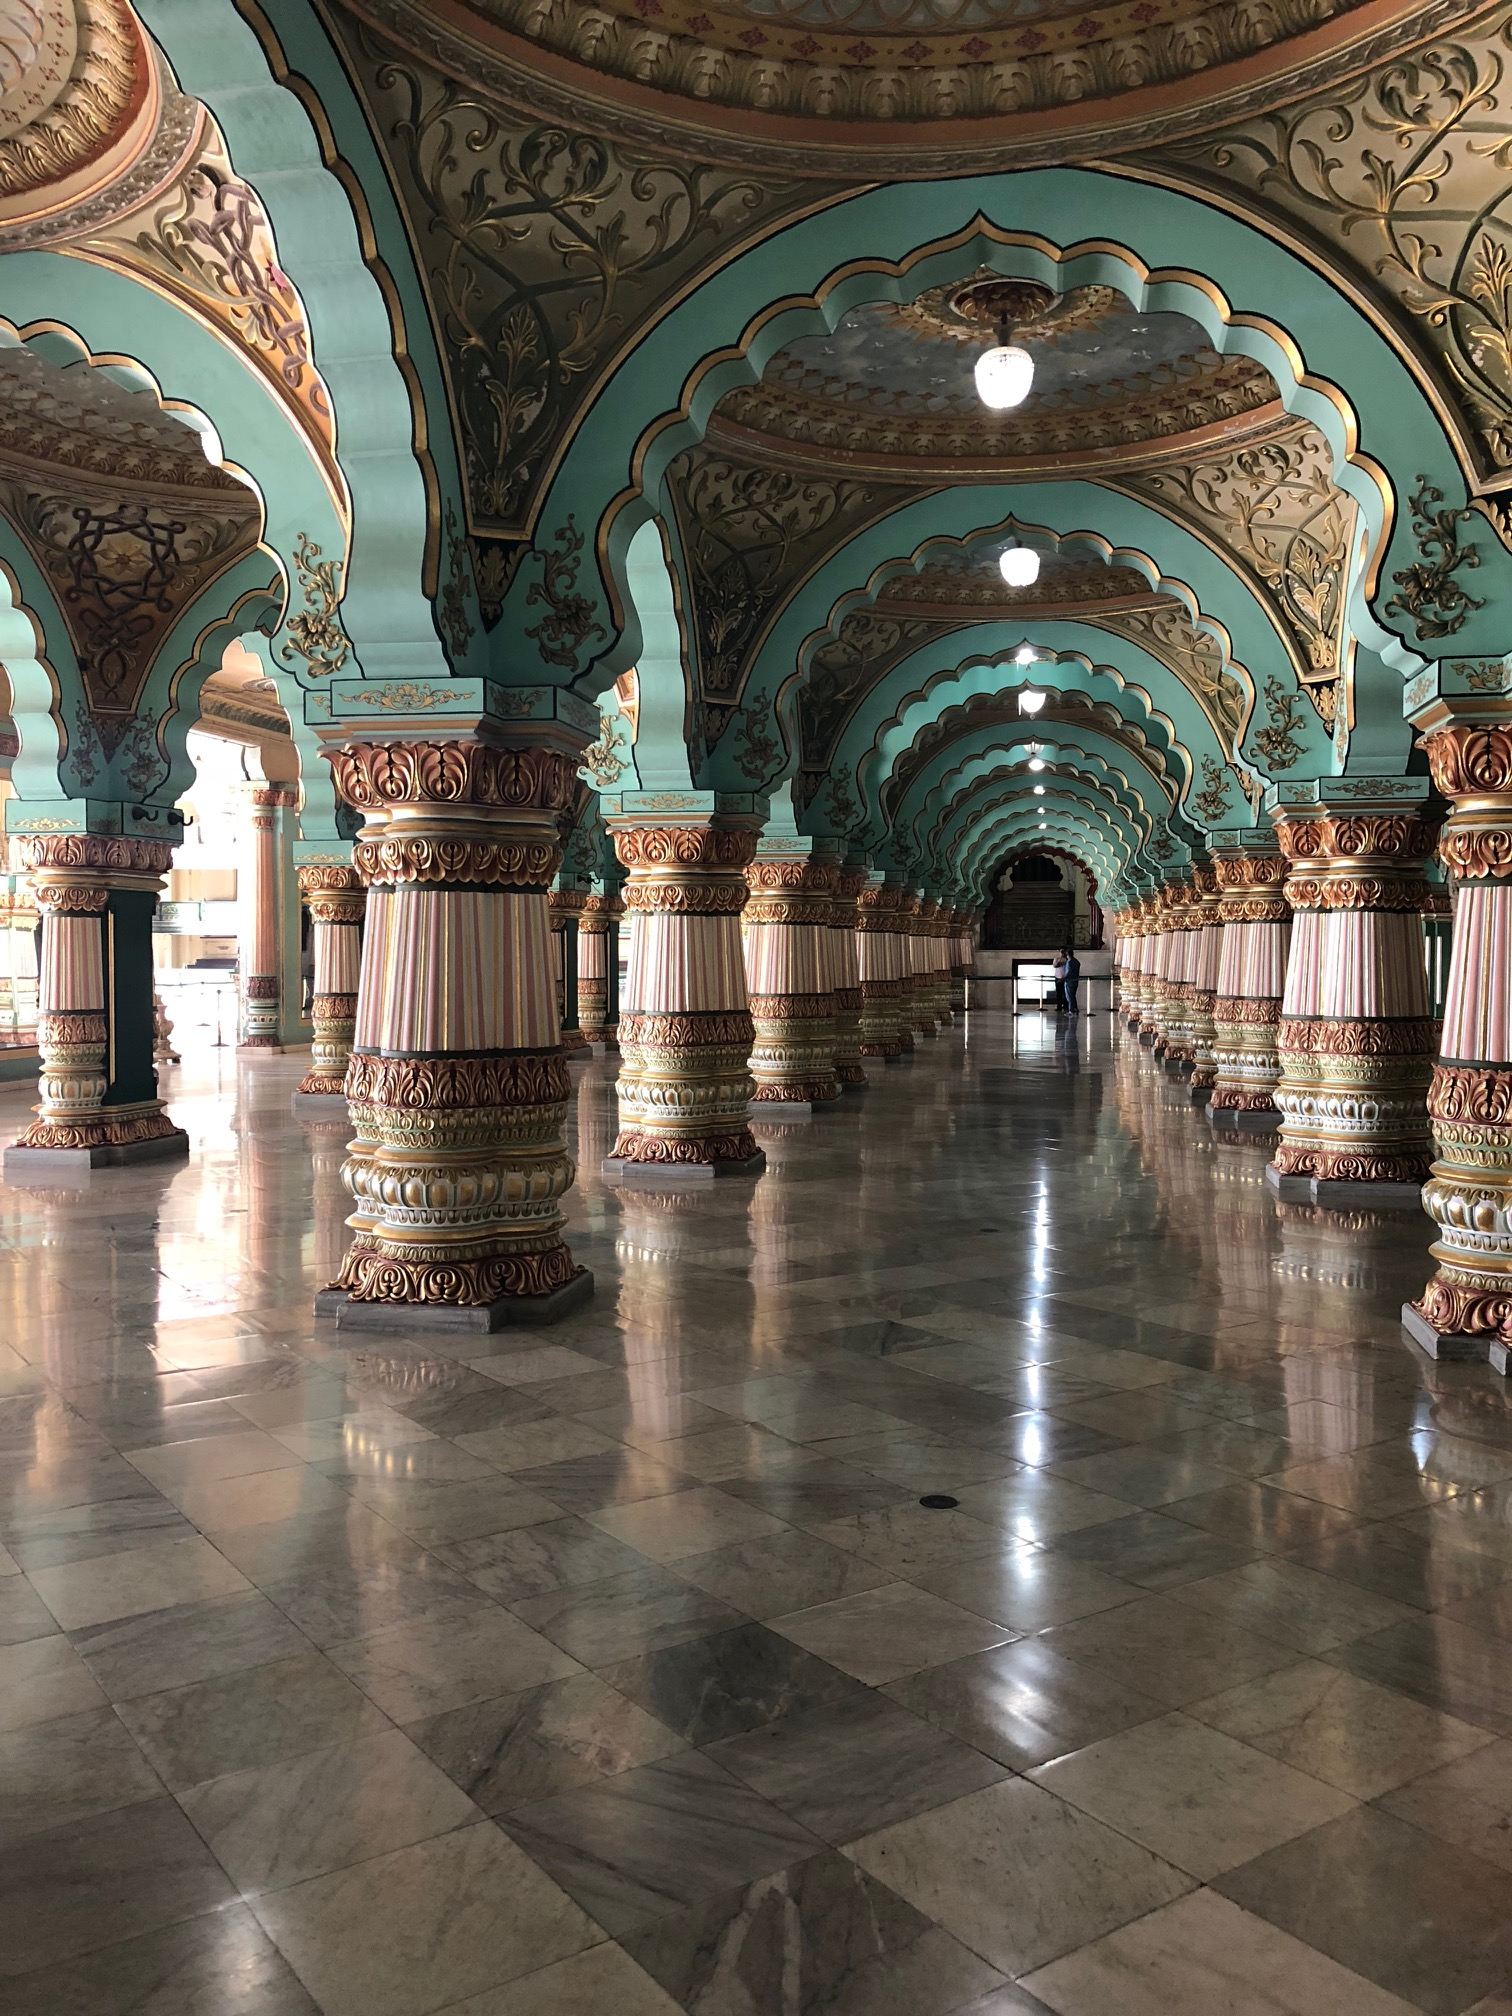 Rows and rows of teal scalloped archways supported by thick ornate columns on a granite floor of large square tiles.